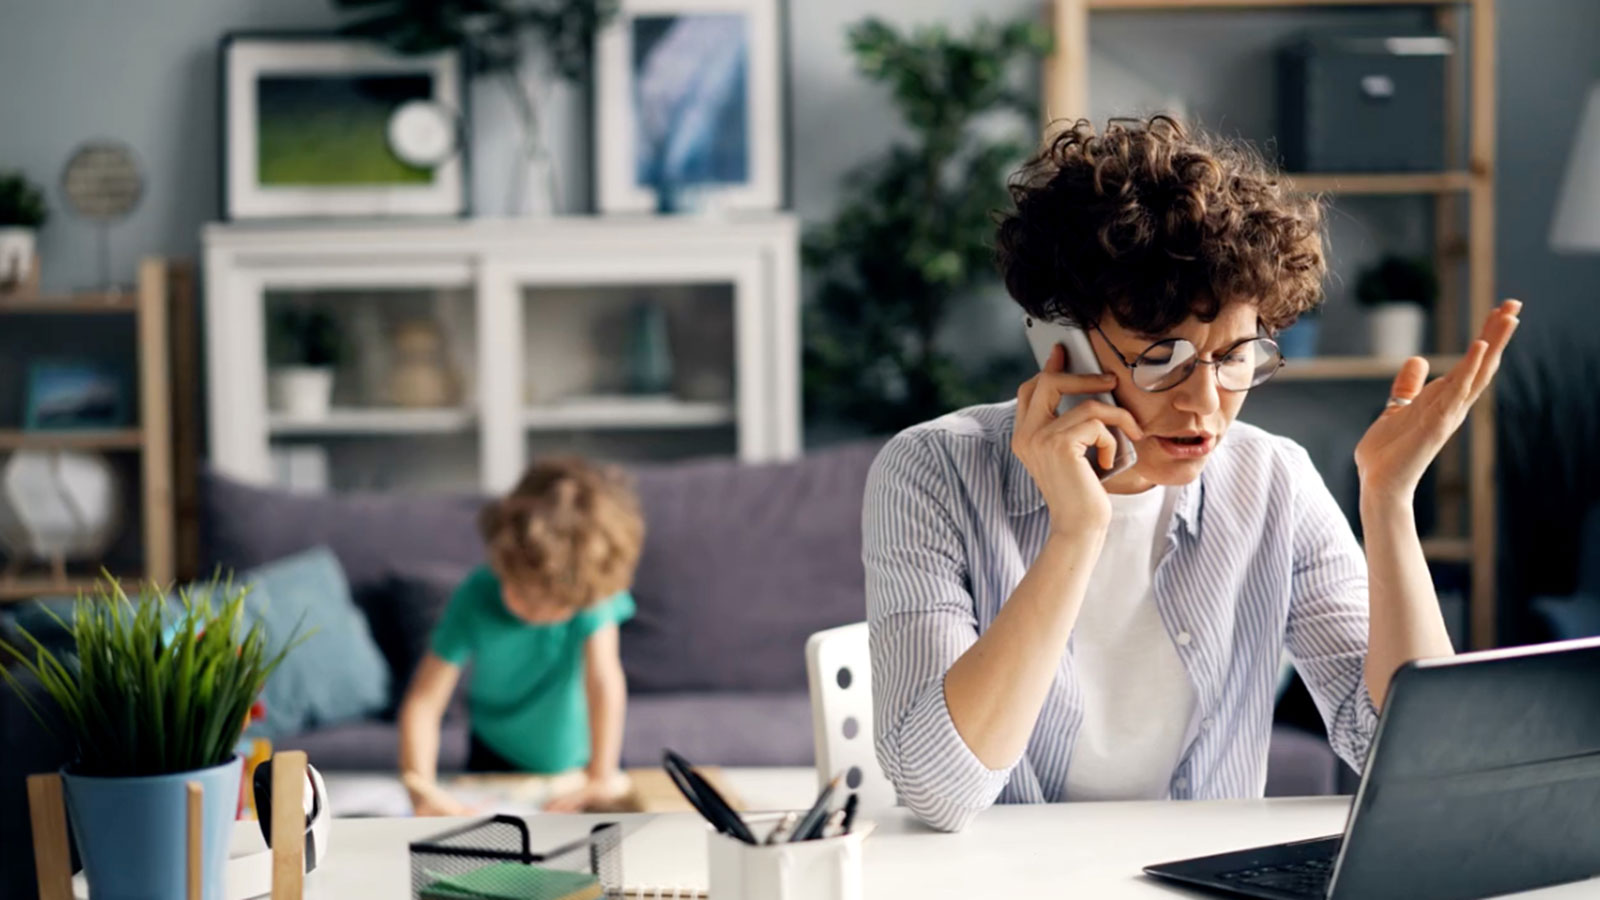 Mother working at home with child in background